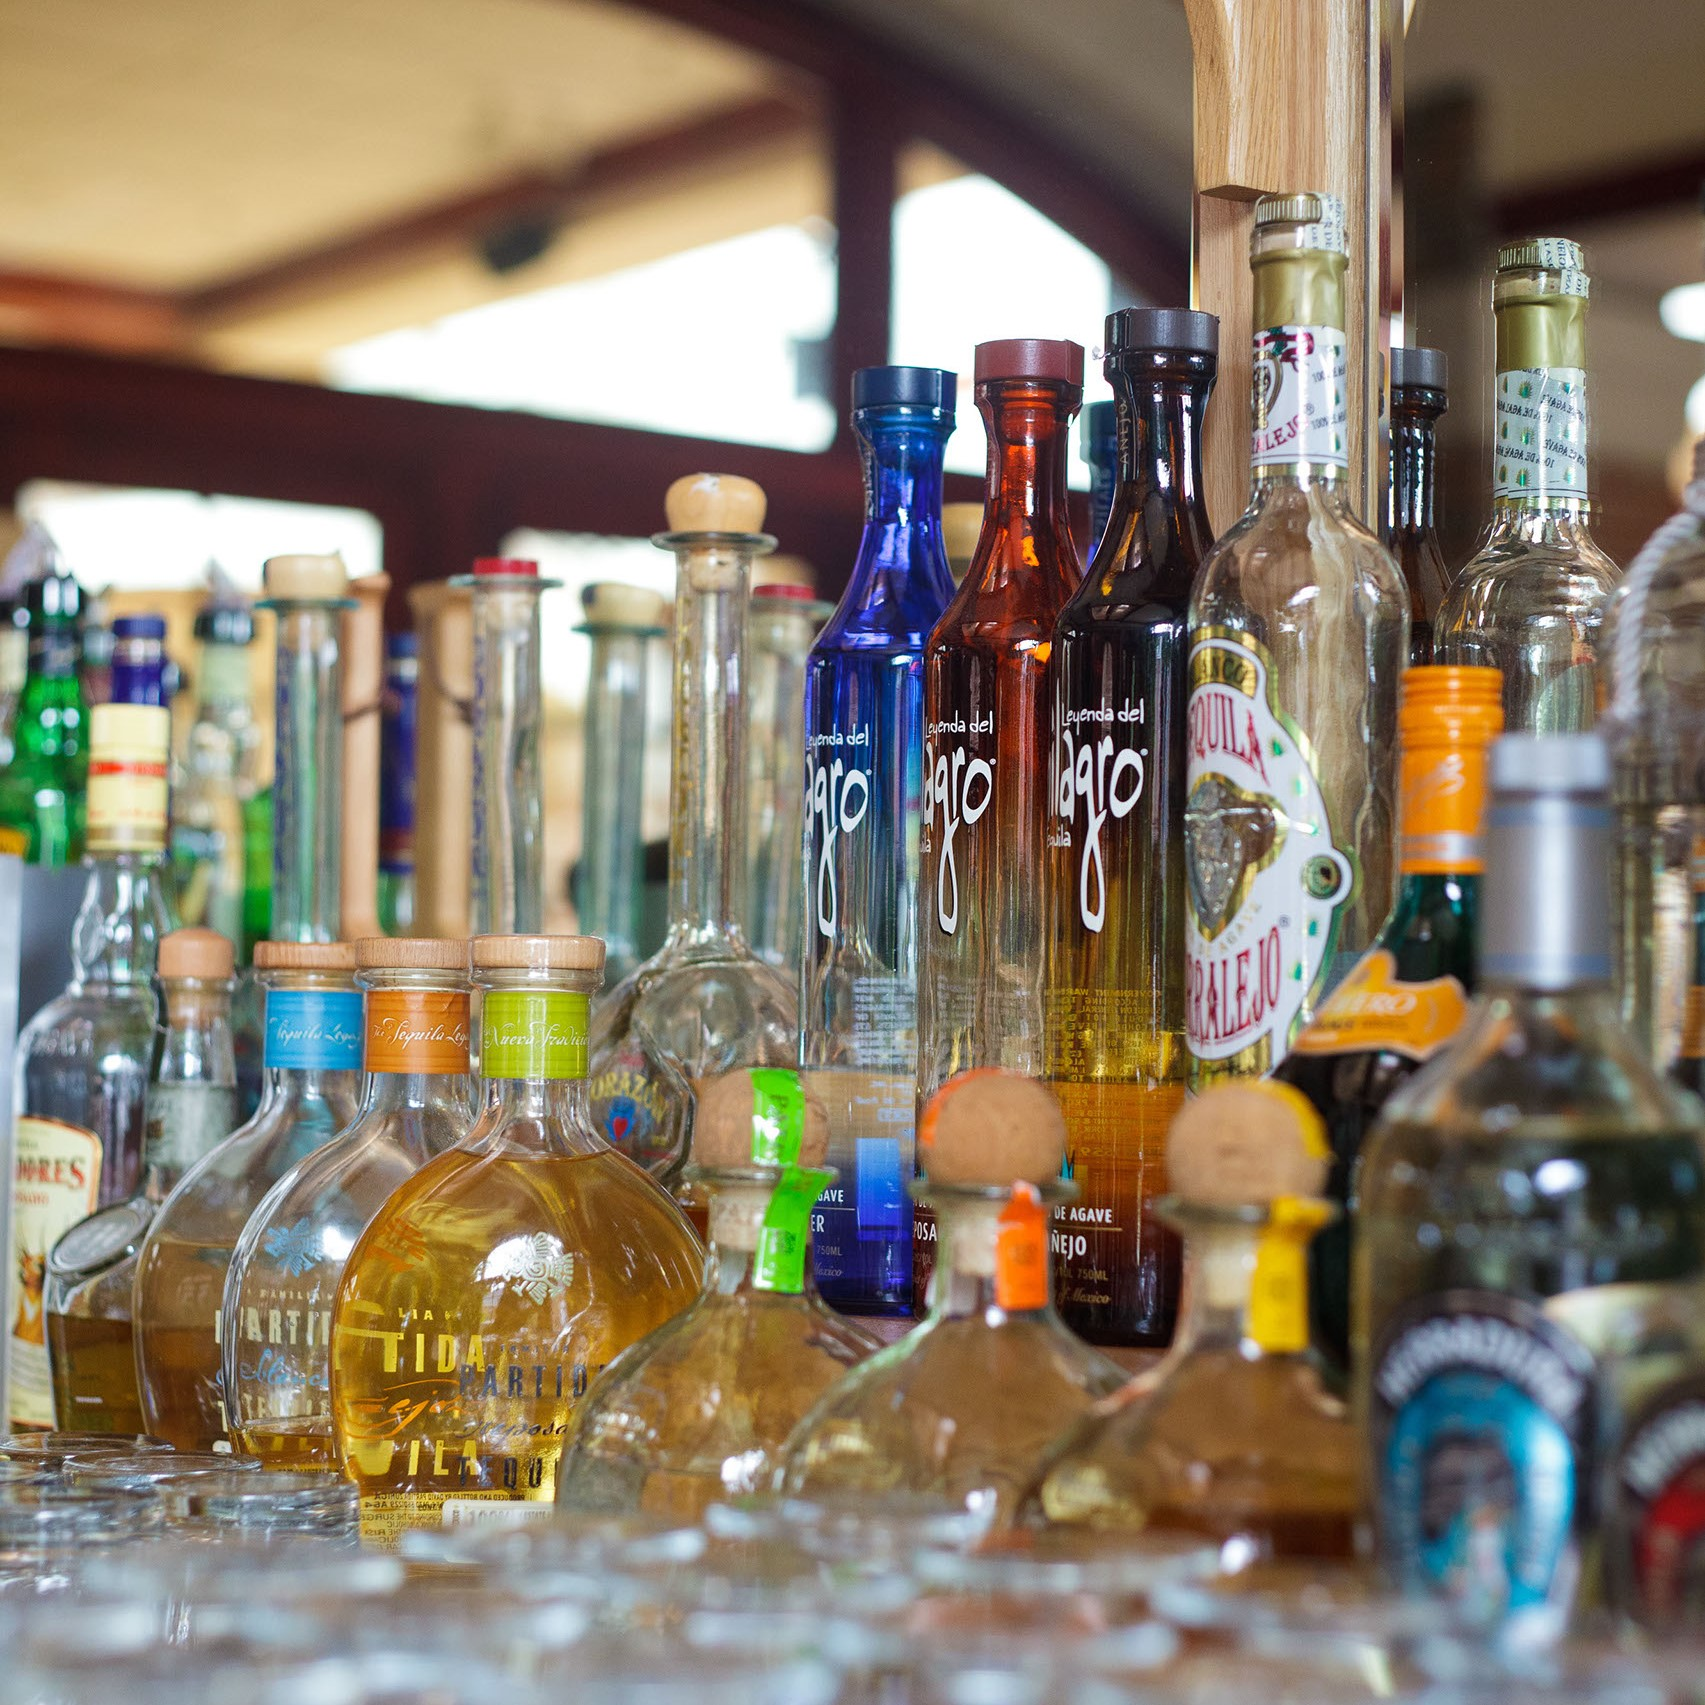 various liquor and tequila bottles lined up on bar